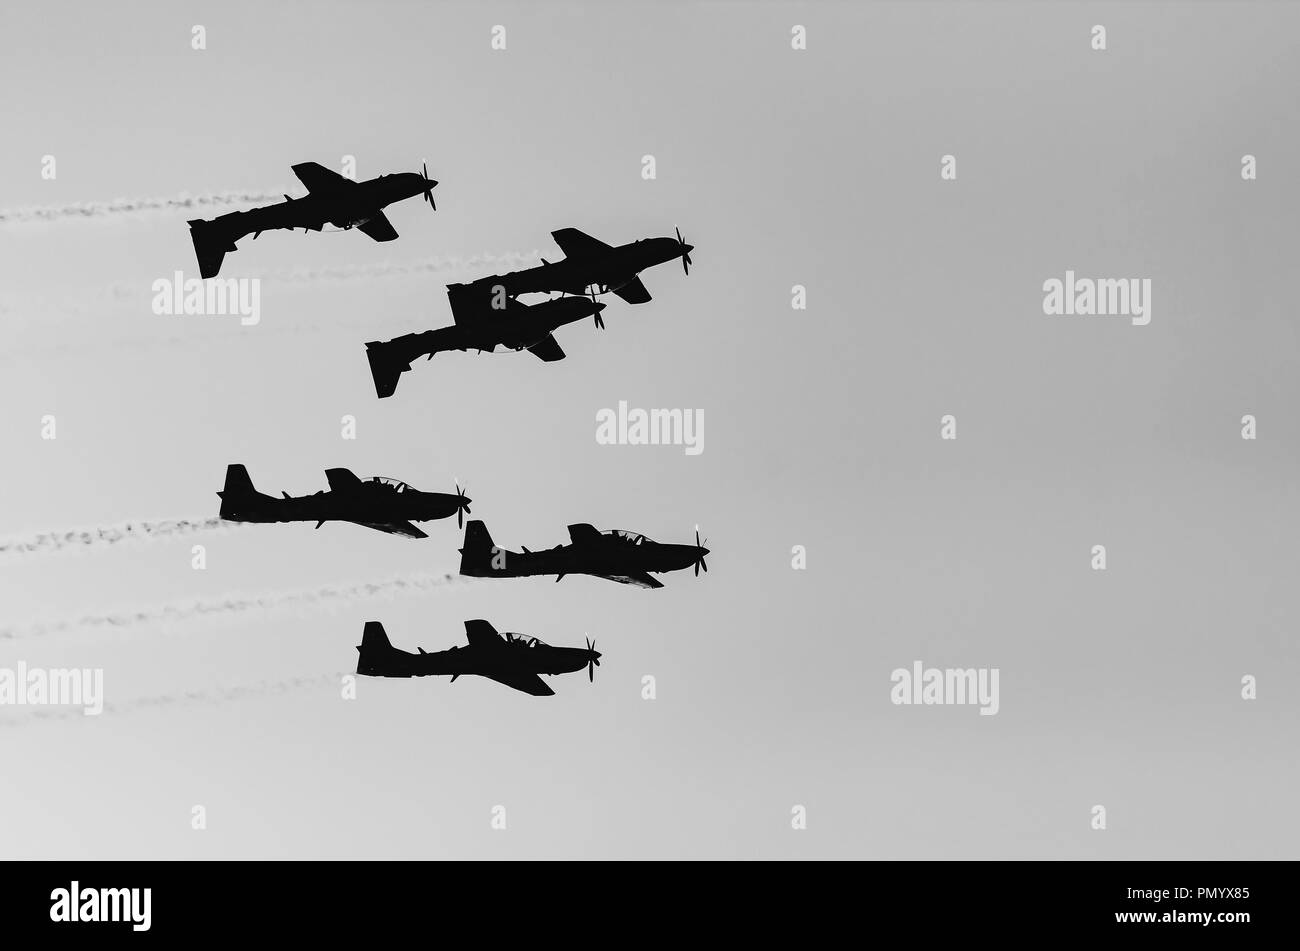 Three planes flying upside down and others three flying normally under. Squad flying together, smoke trail behind. Planes making aerial acrobatics. - Stock Image